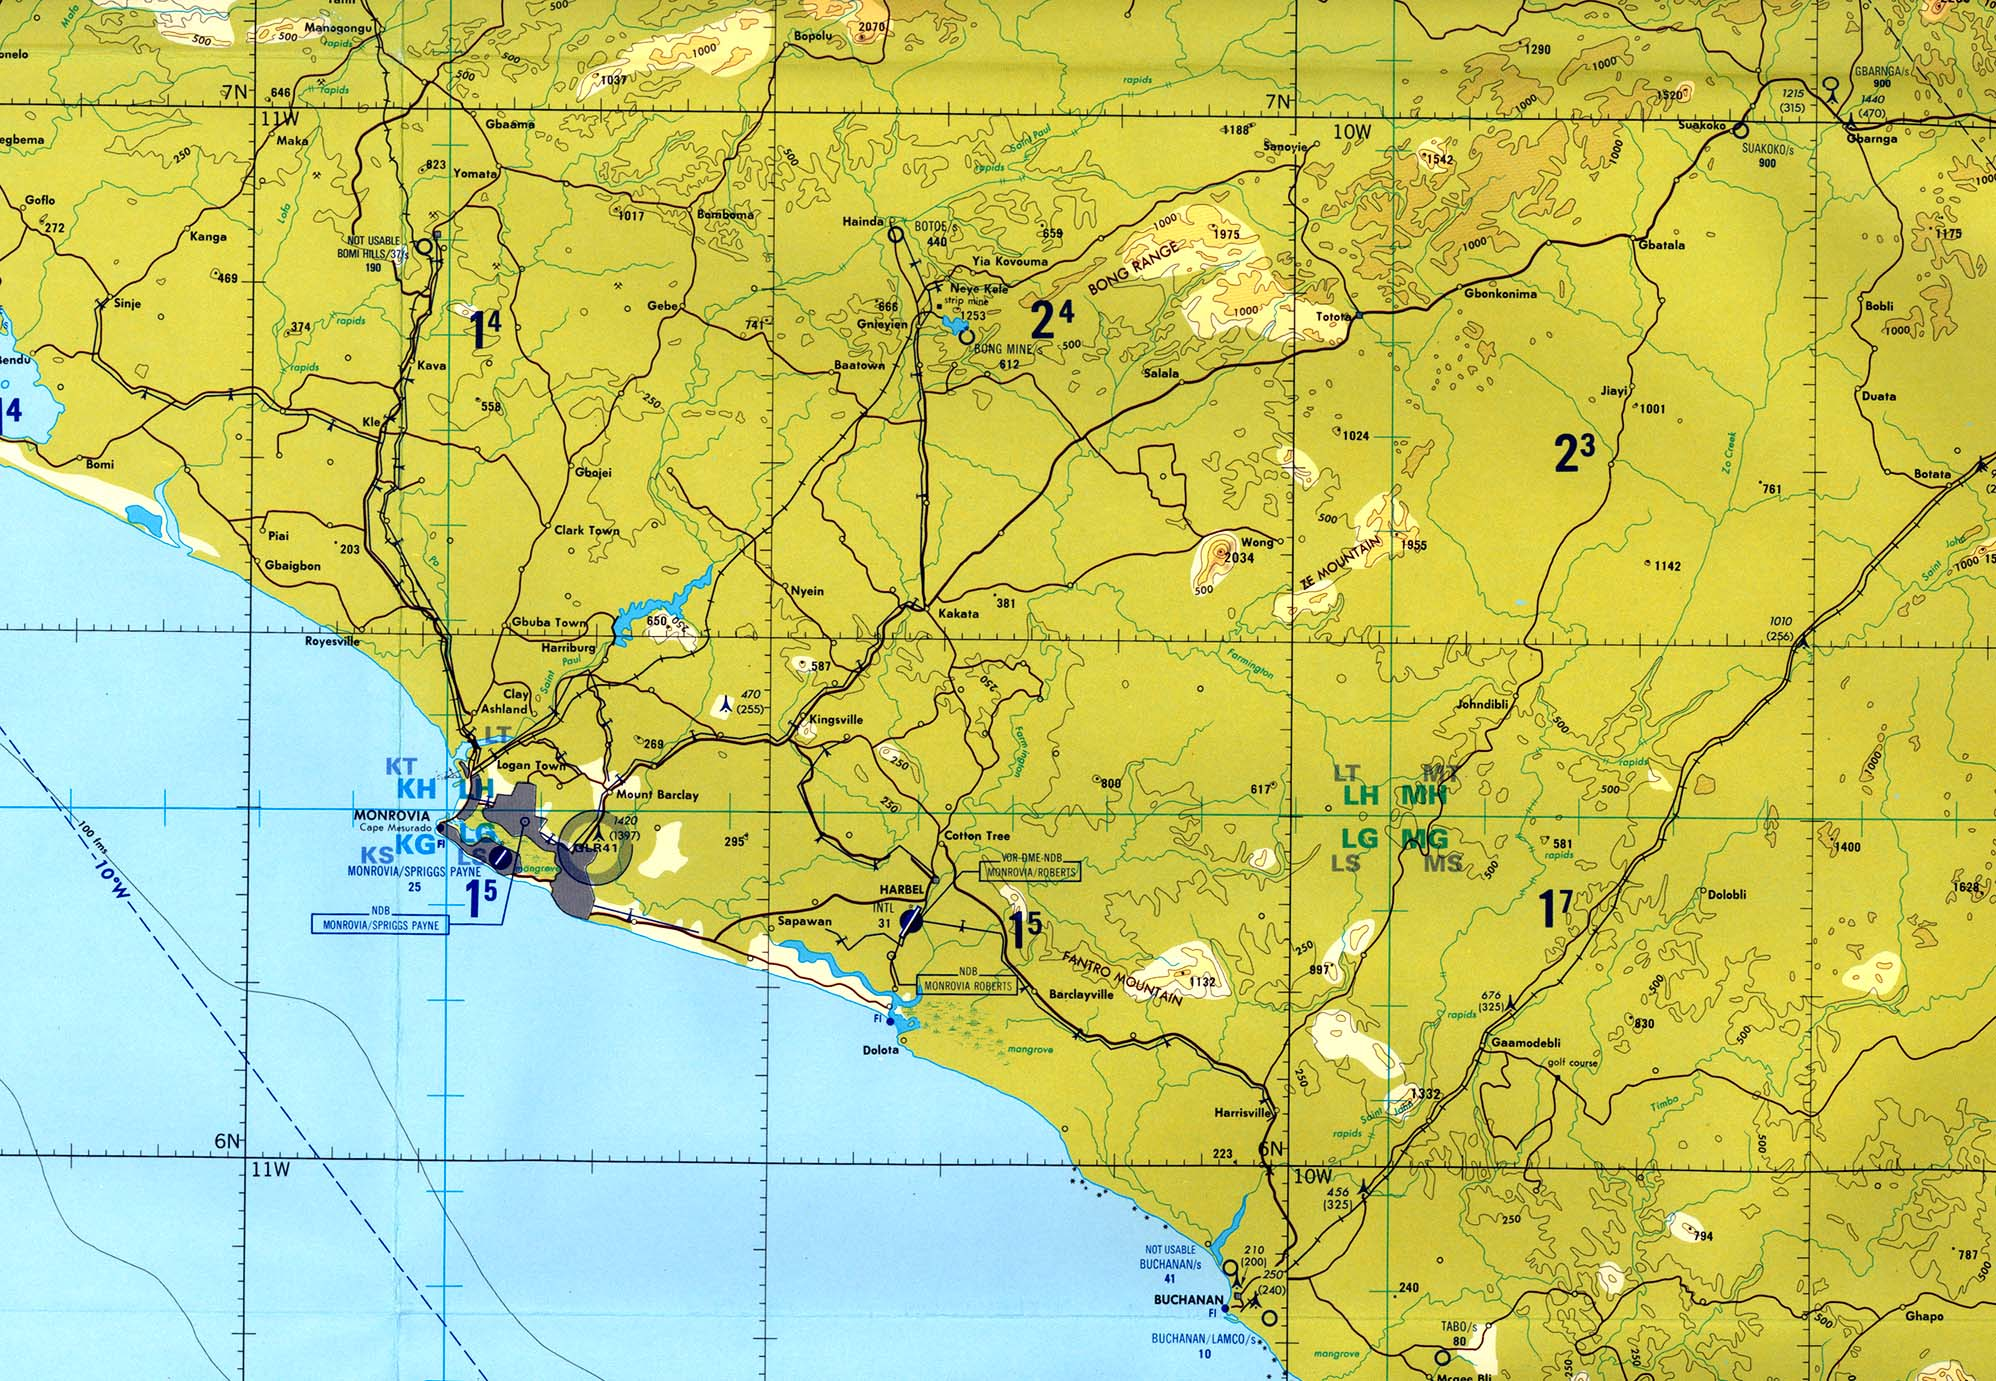 Liberia Maps - Perry-Castañeda Map Collection - UT Library ...